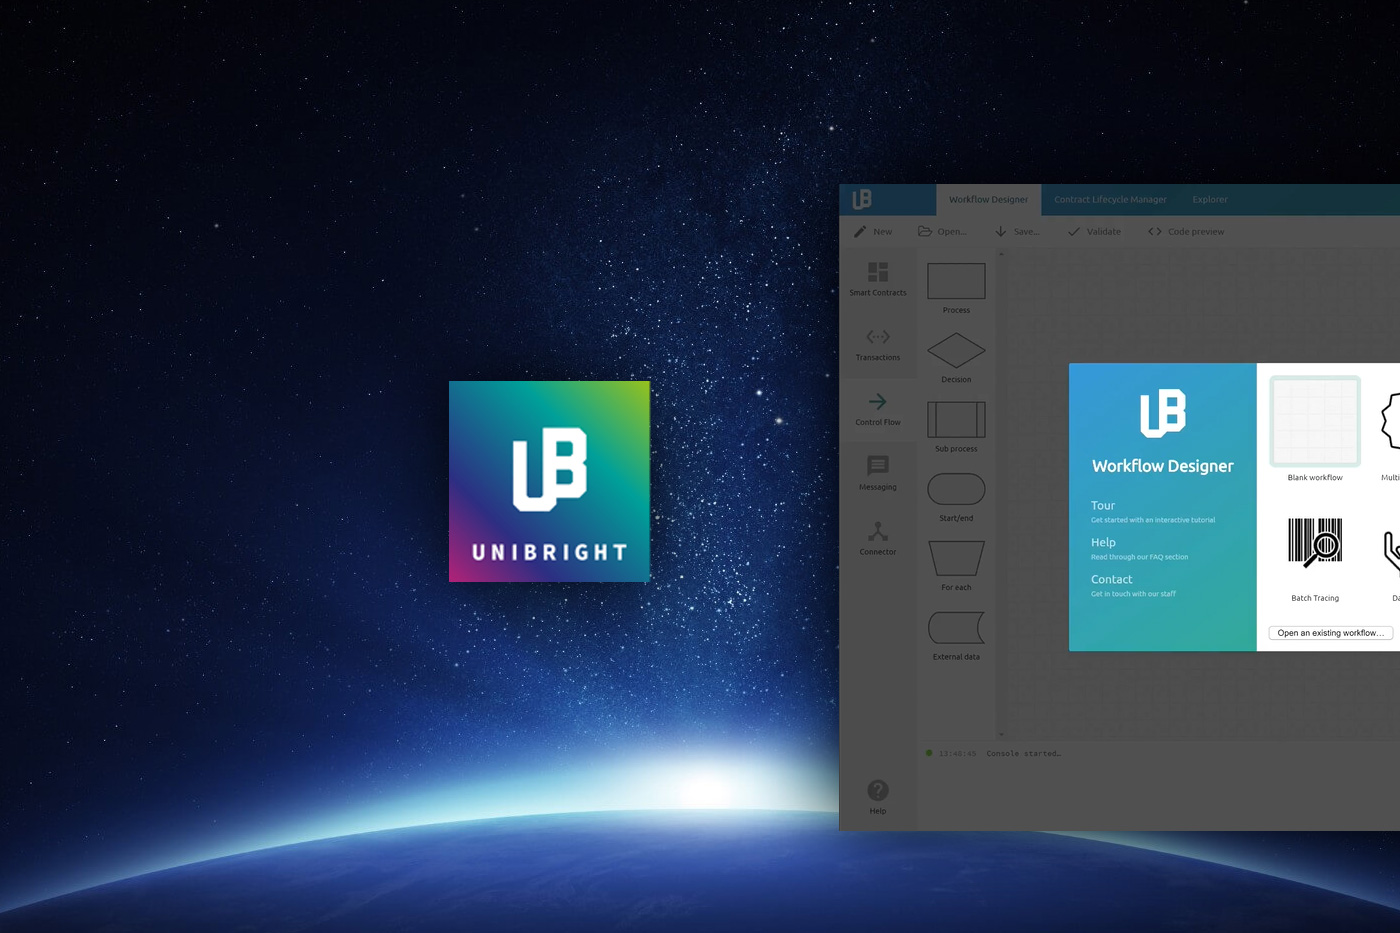 unibright-ico-a-unified-framework-for-blockchain-based-business-integration[3]